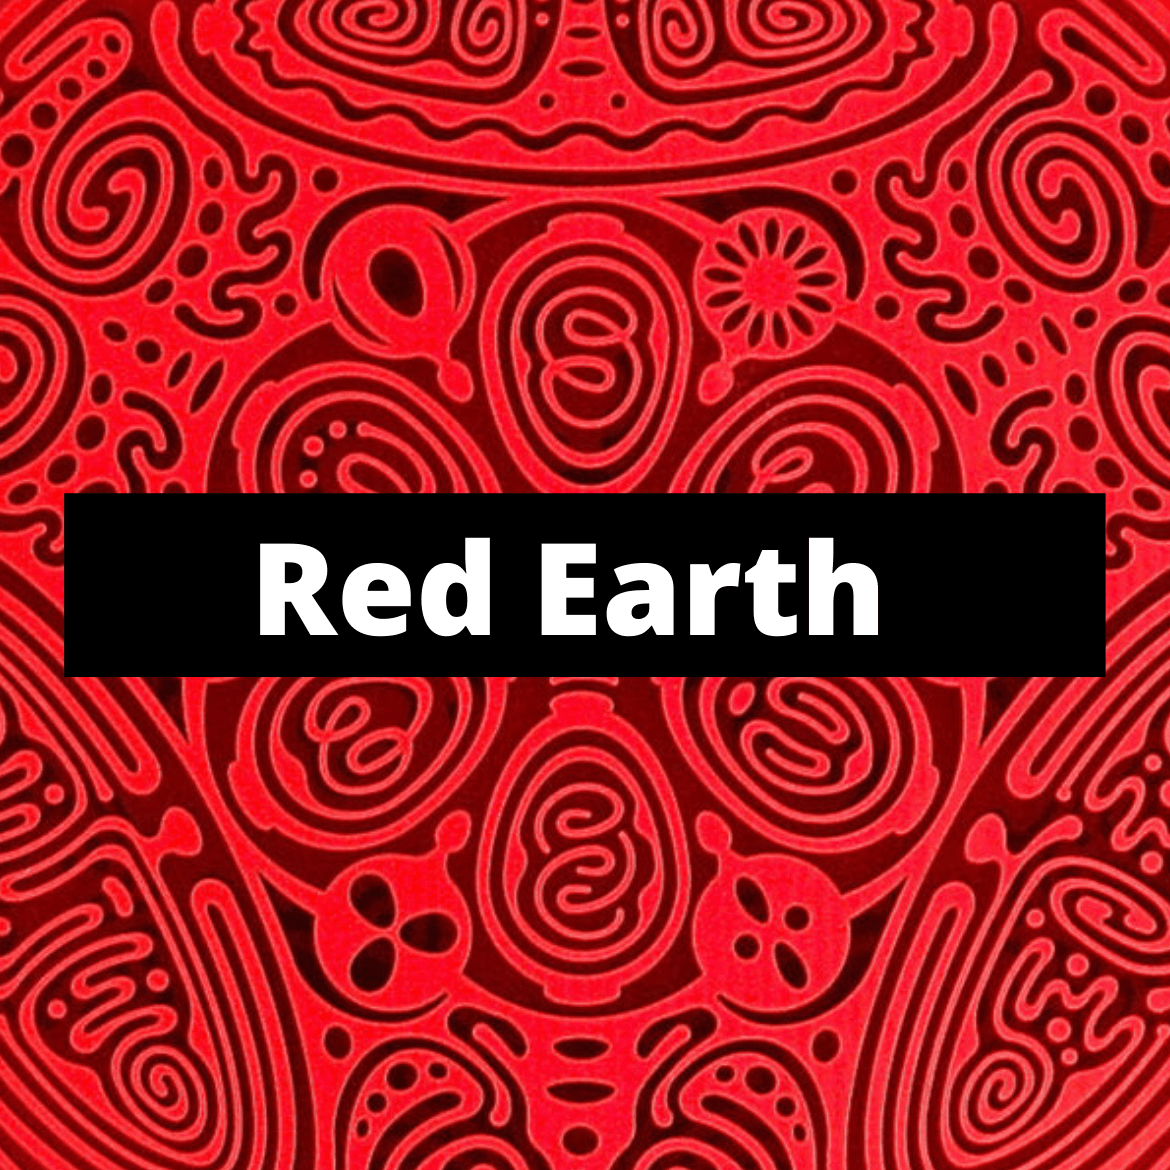 Powerforms Divine Essence Red Earth